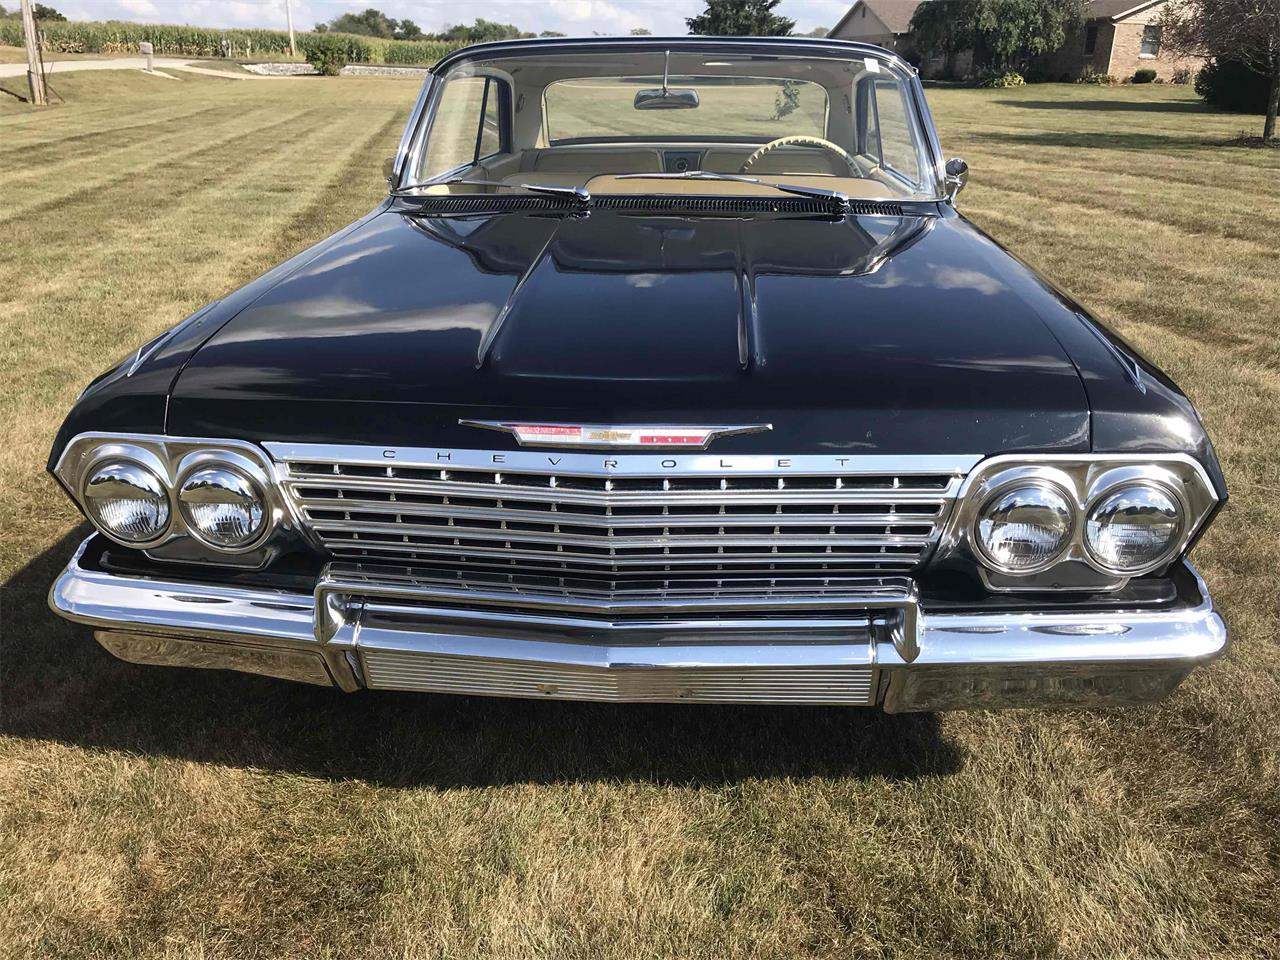 1962 Chevrolet Impala SS (CC-1254480) for sale in Rushville, Indiana